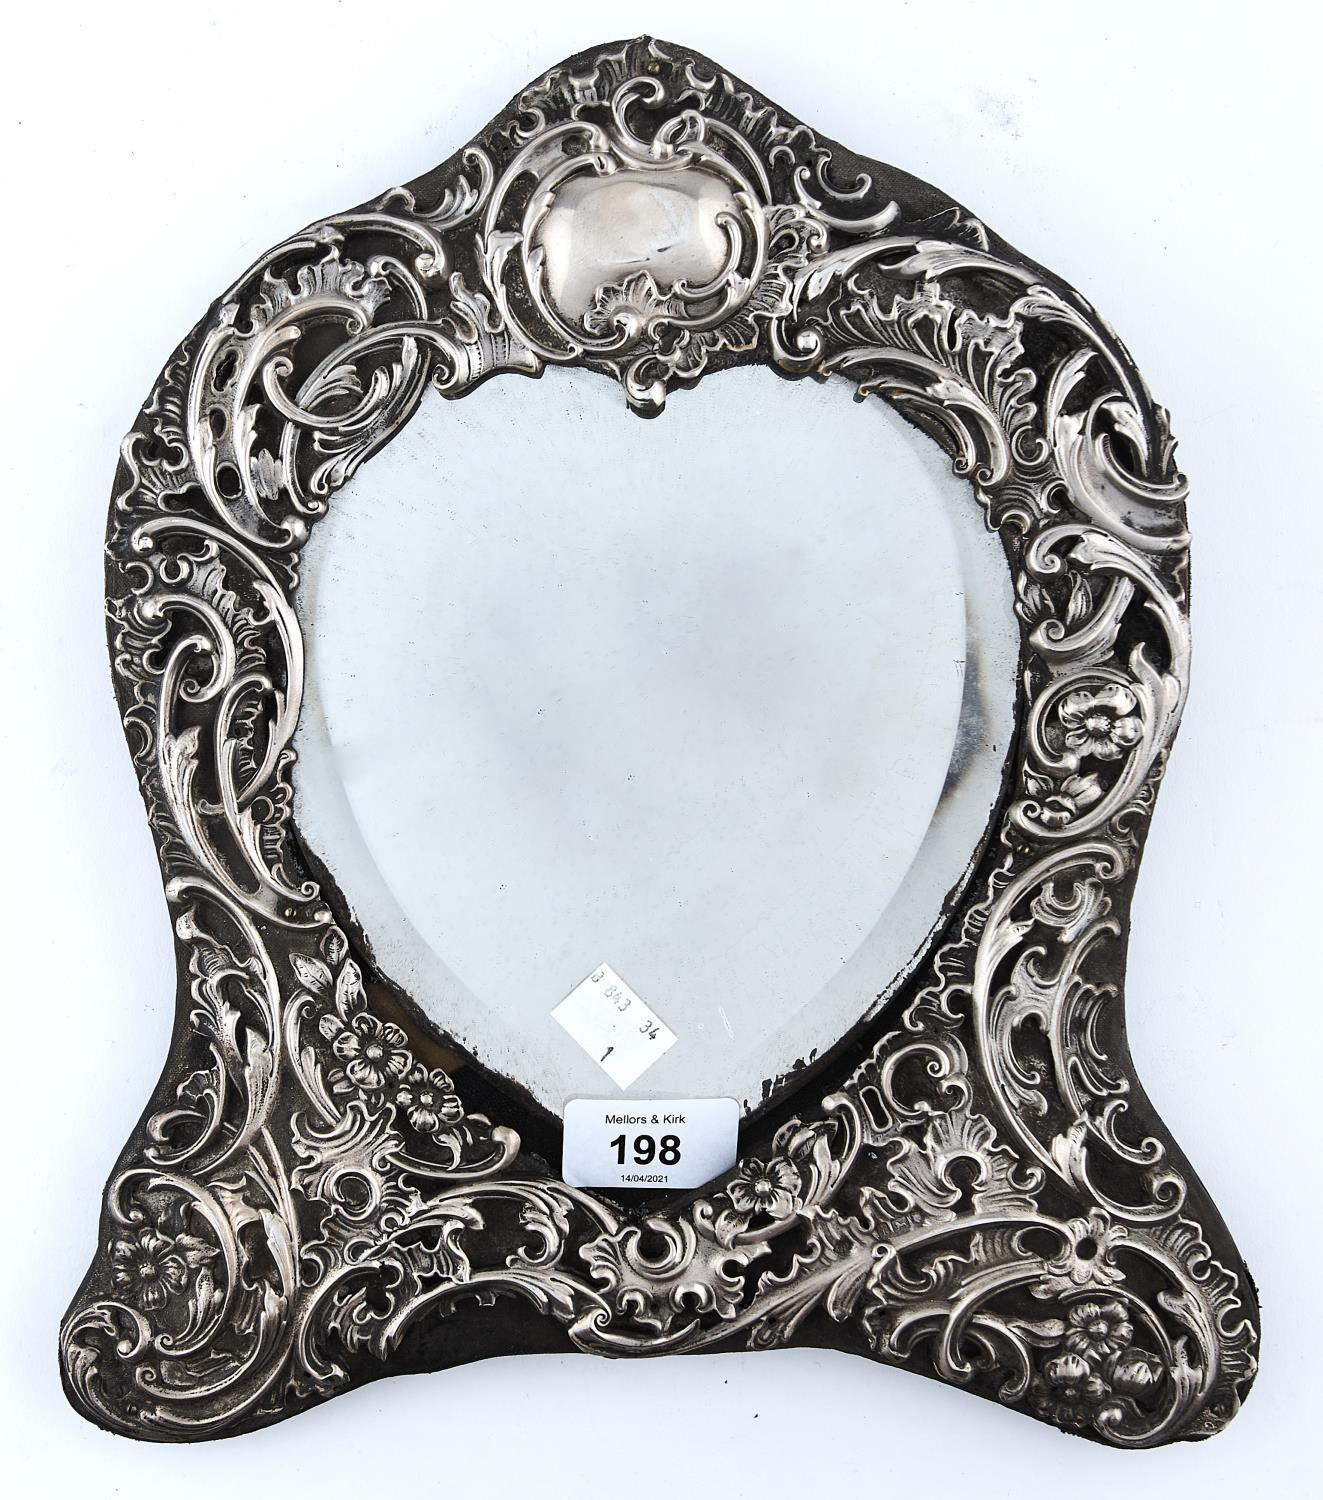 AN EDWARD VII SILVER DRESSING MIRROR, THE HEART SHAPED BEVELLED PLATE IN DIE STAMPED OPENWORK ROCOCO